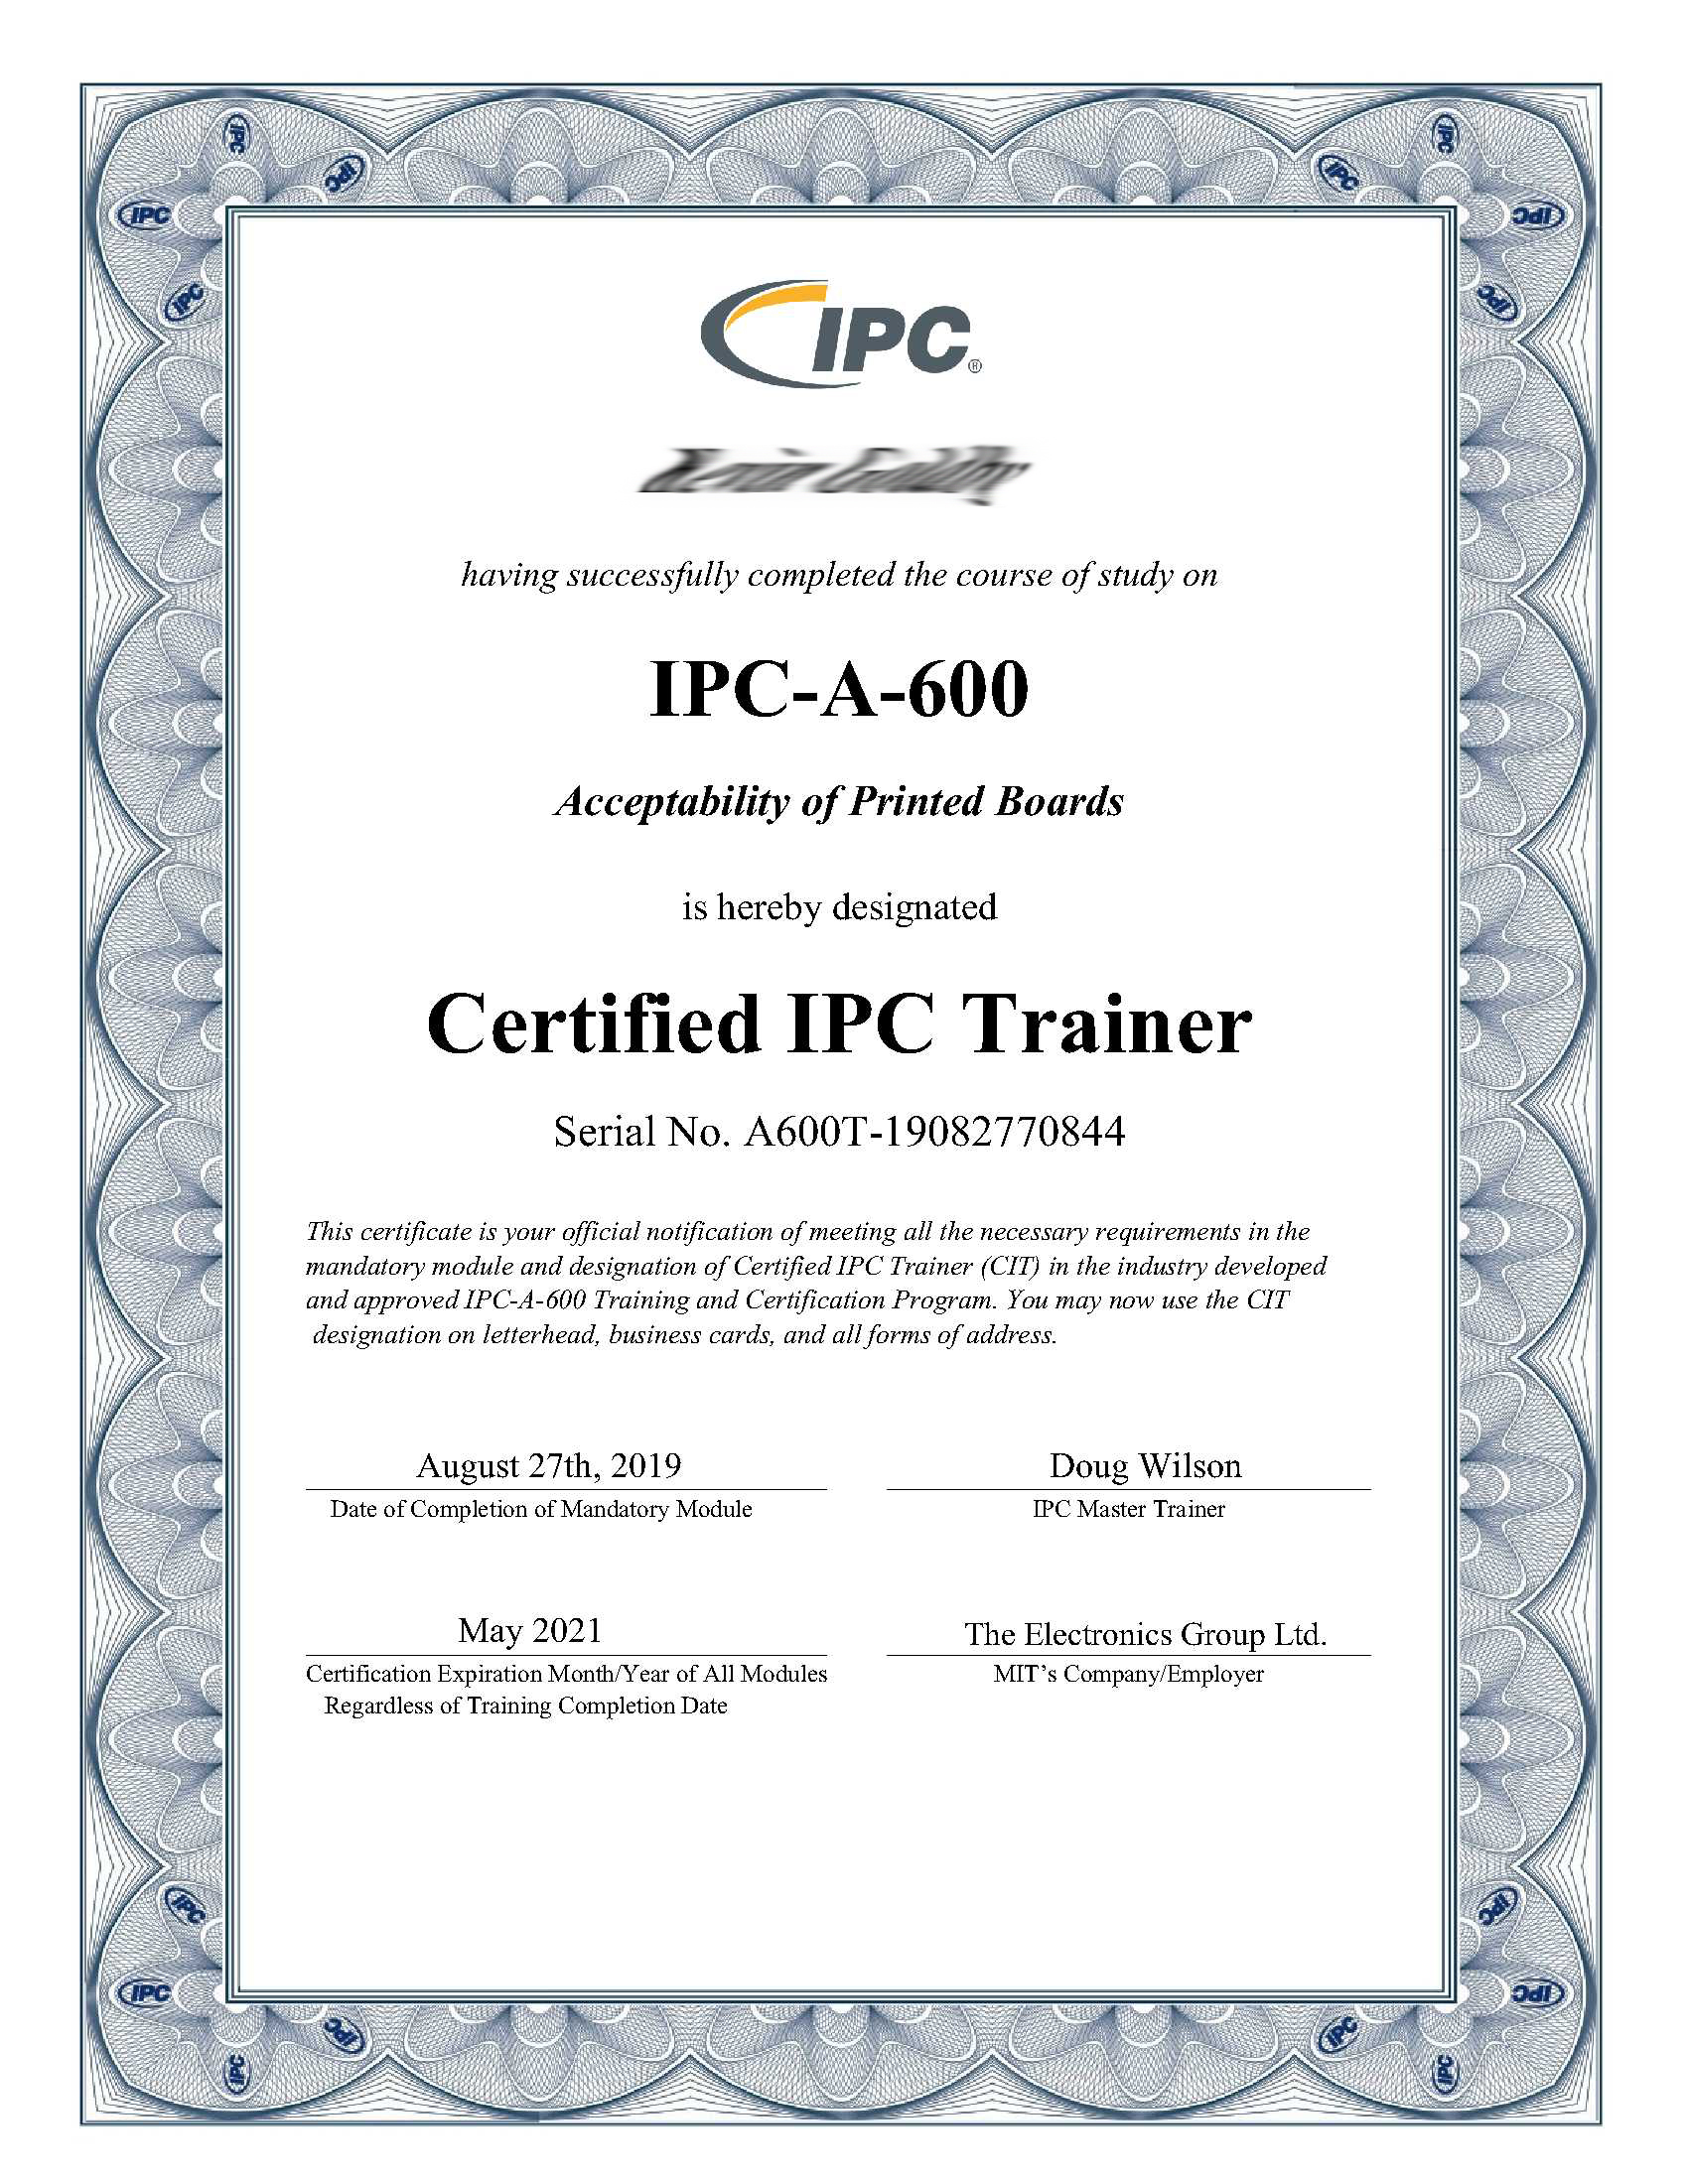 Cleveland Circuits IPC-A-600 Certificate